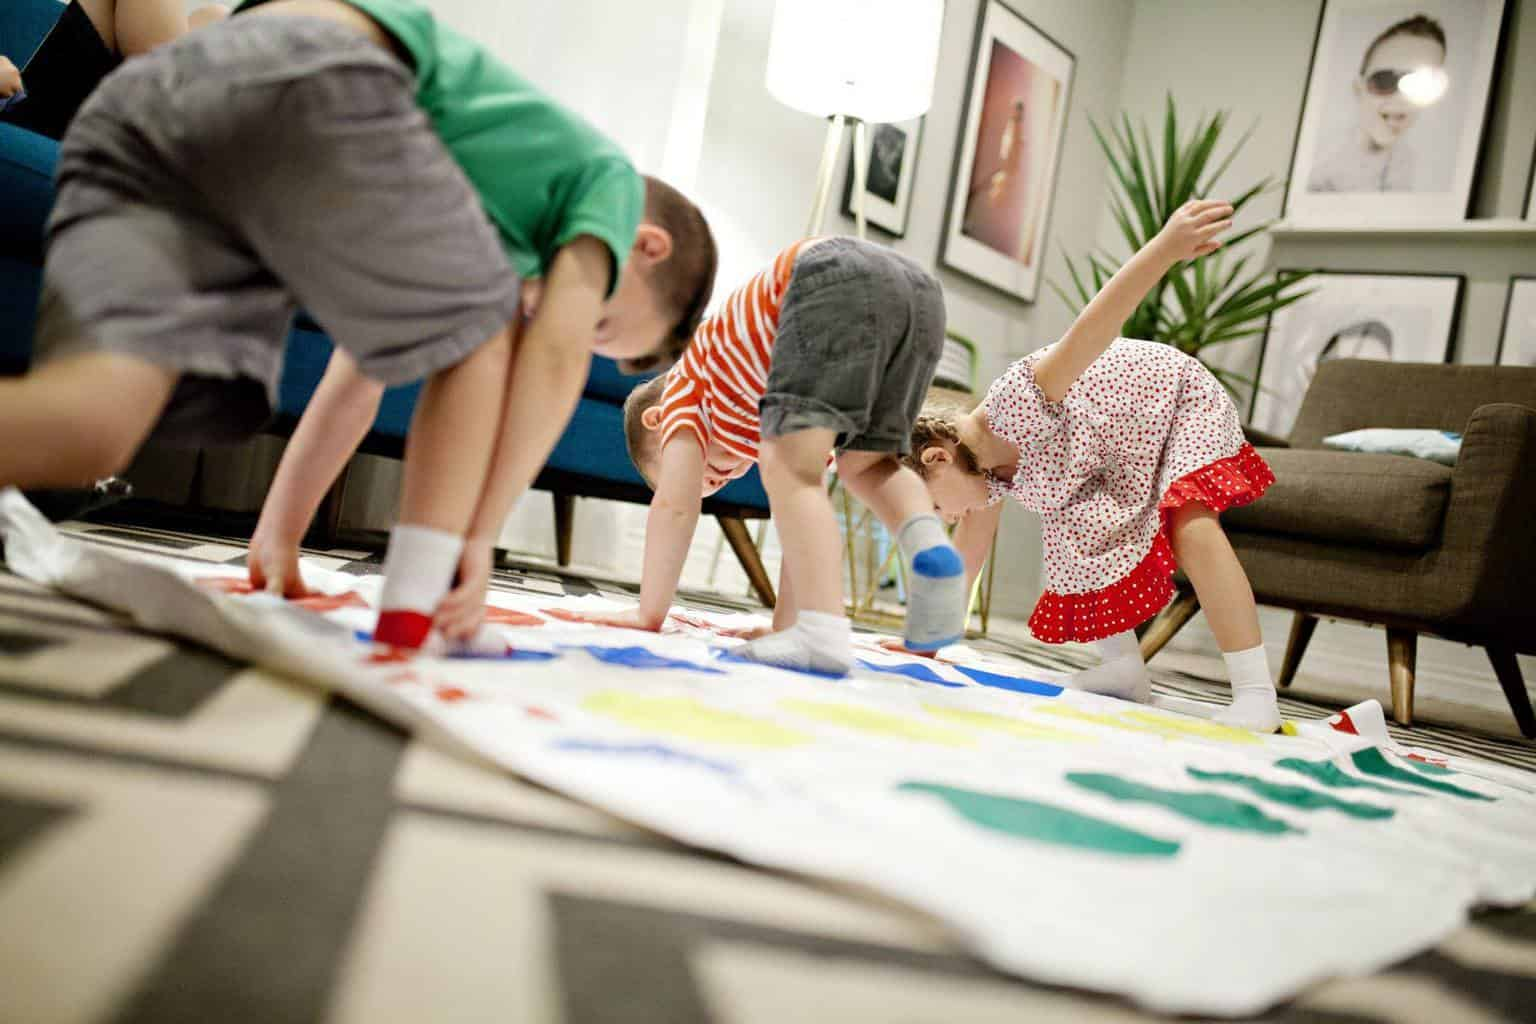 Homeschooling busy kids is like playing perpetual twister